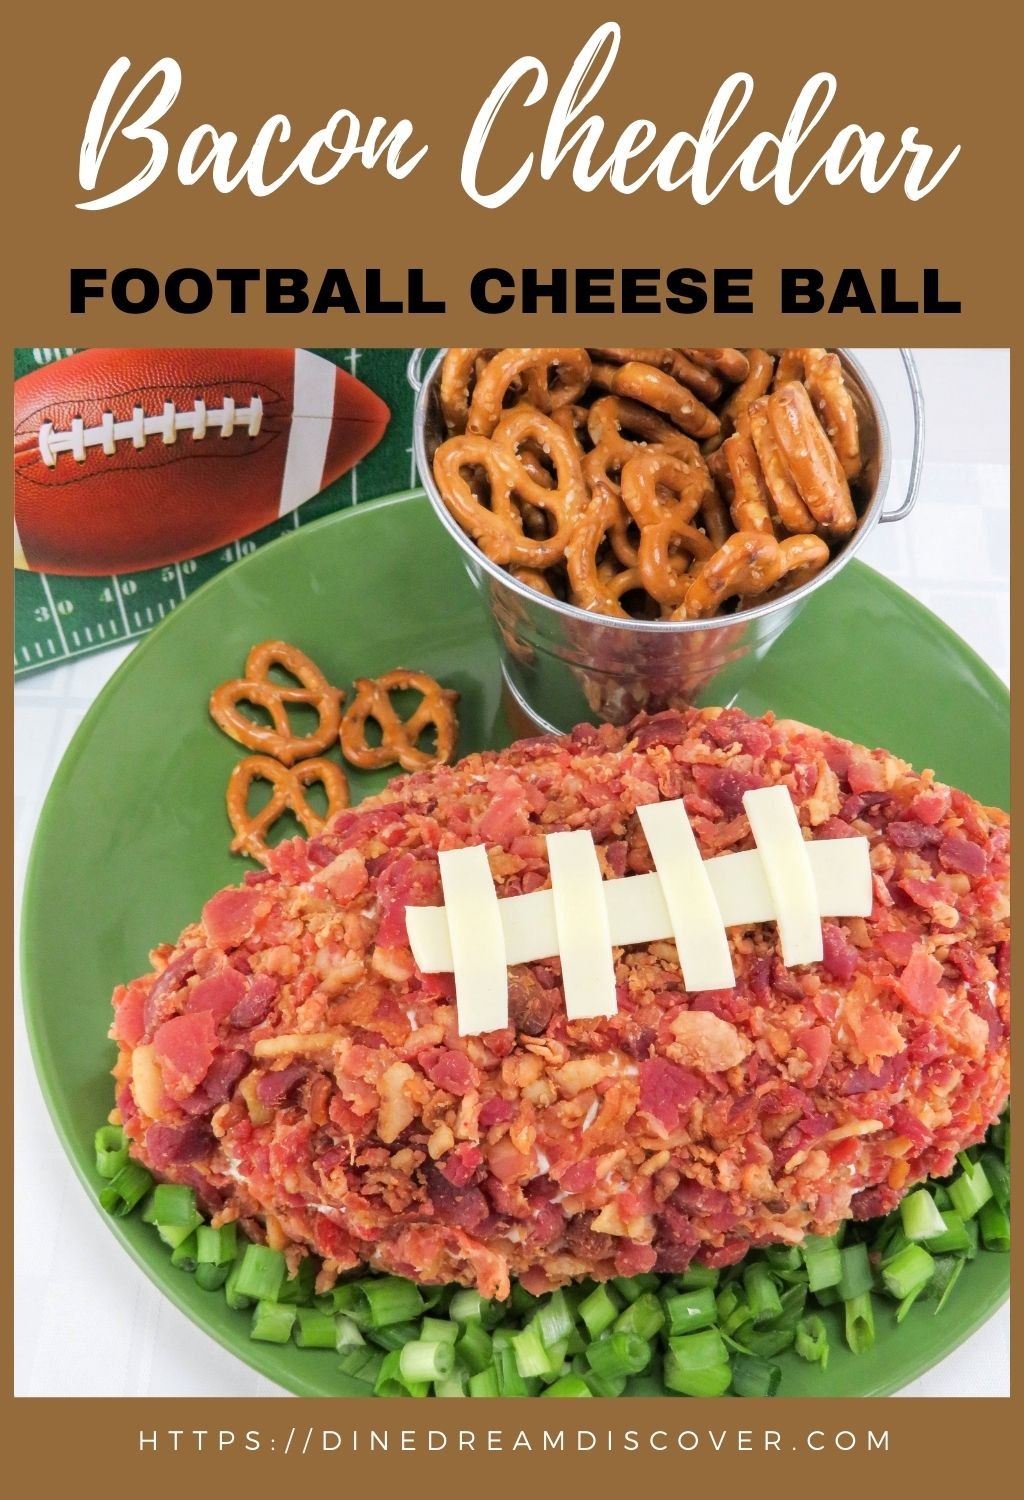 bacon cheddar football cheese ball